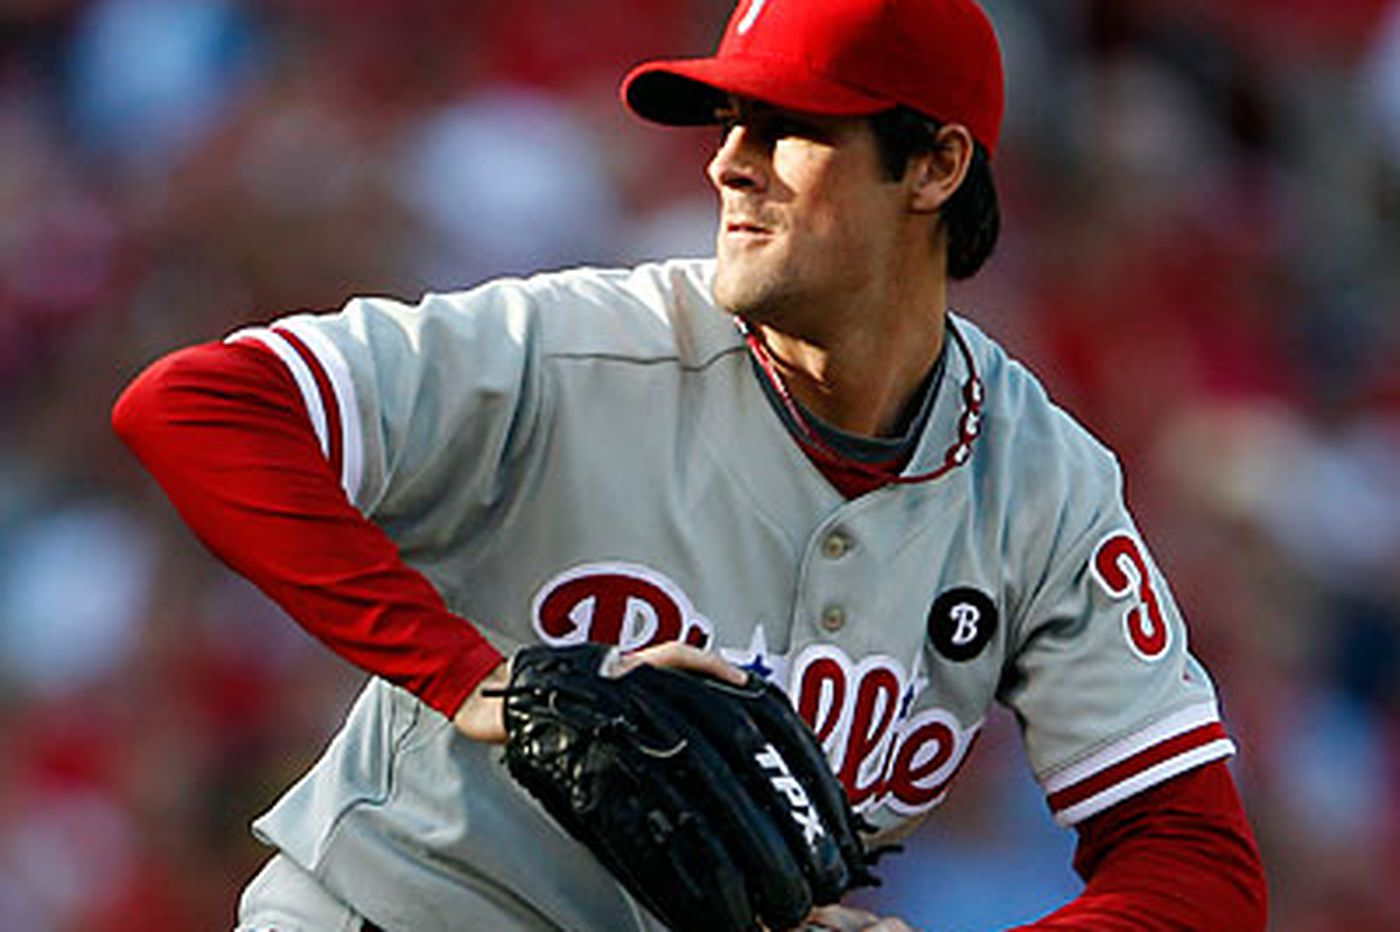 Phillies Notebook: Hamels could be Phillies' next order of business